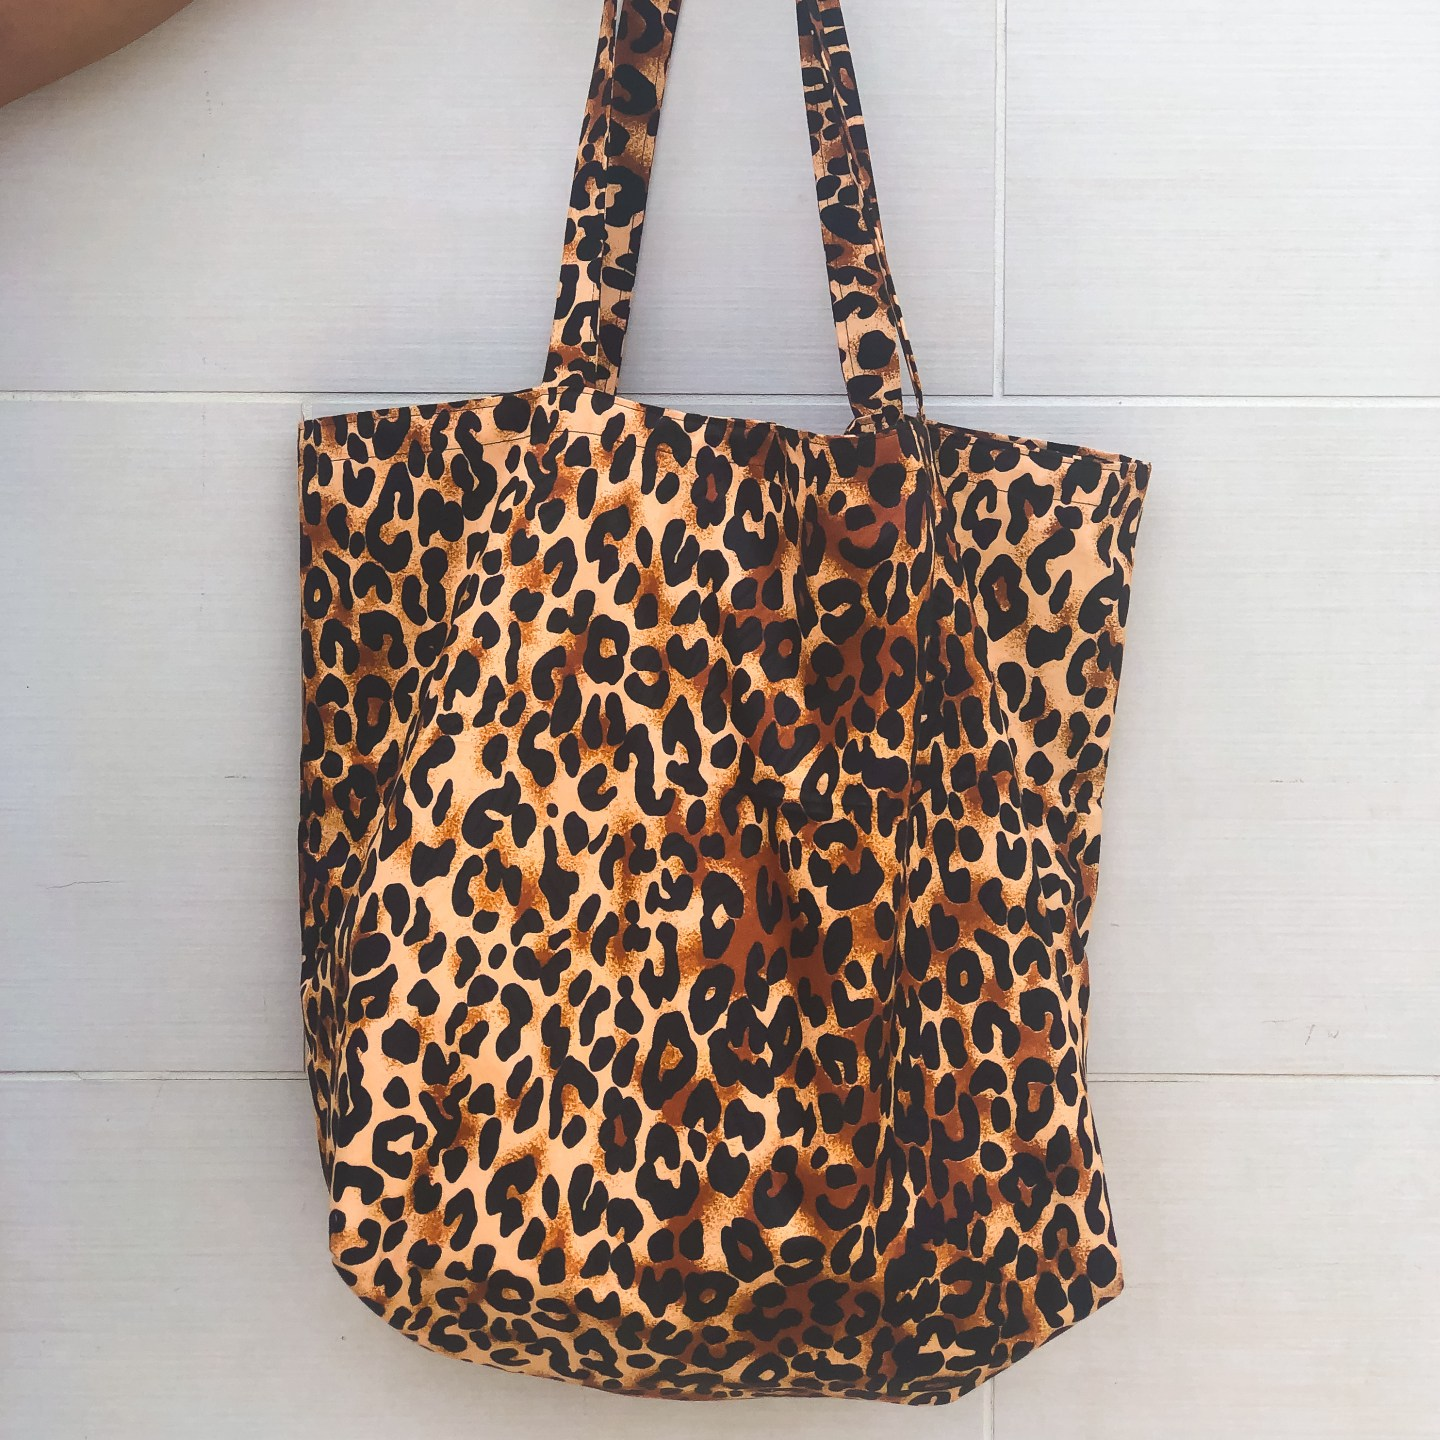 DIY Leopard Tote Bag | Love Igho